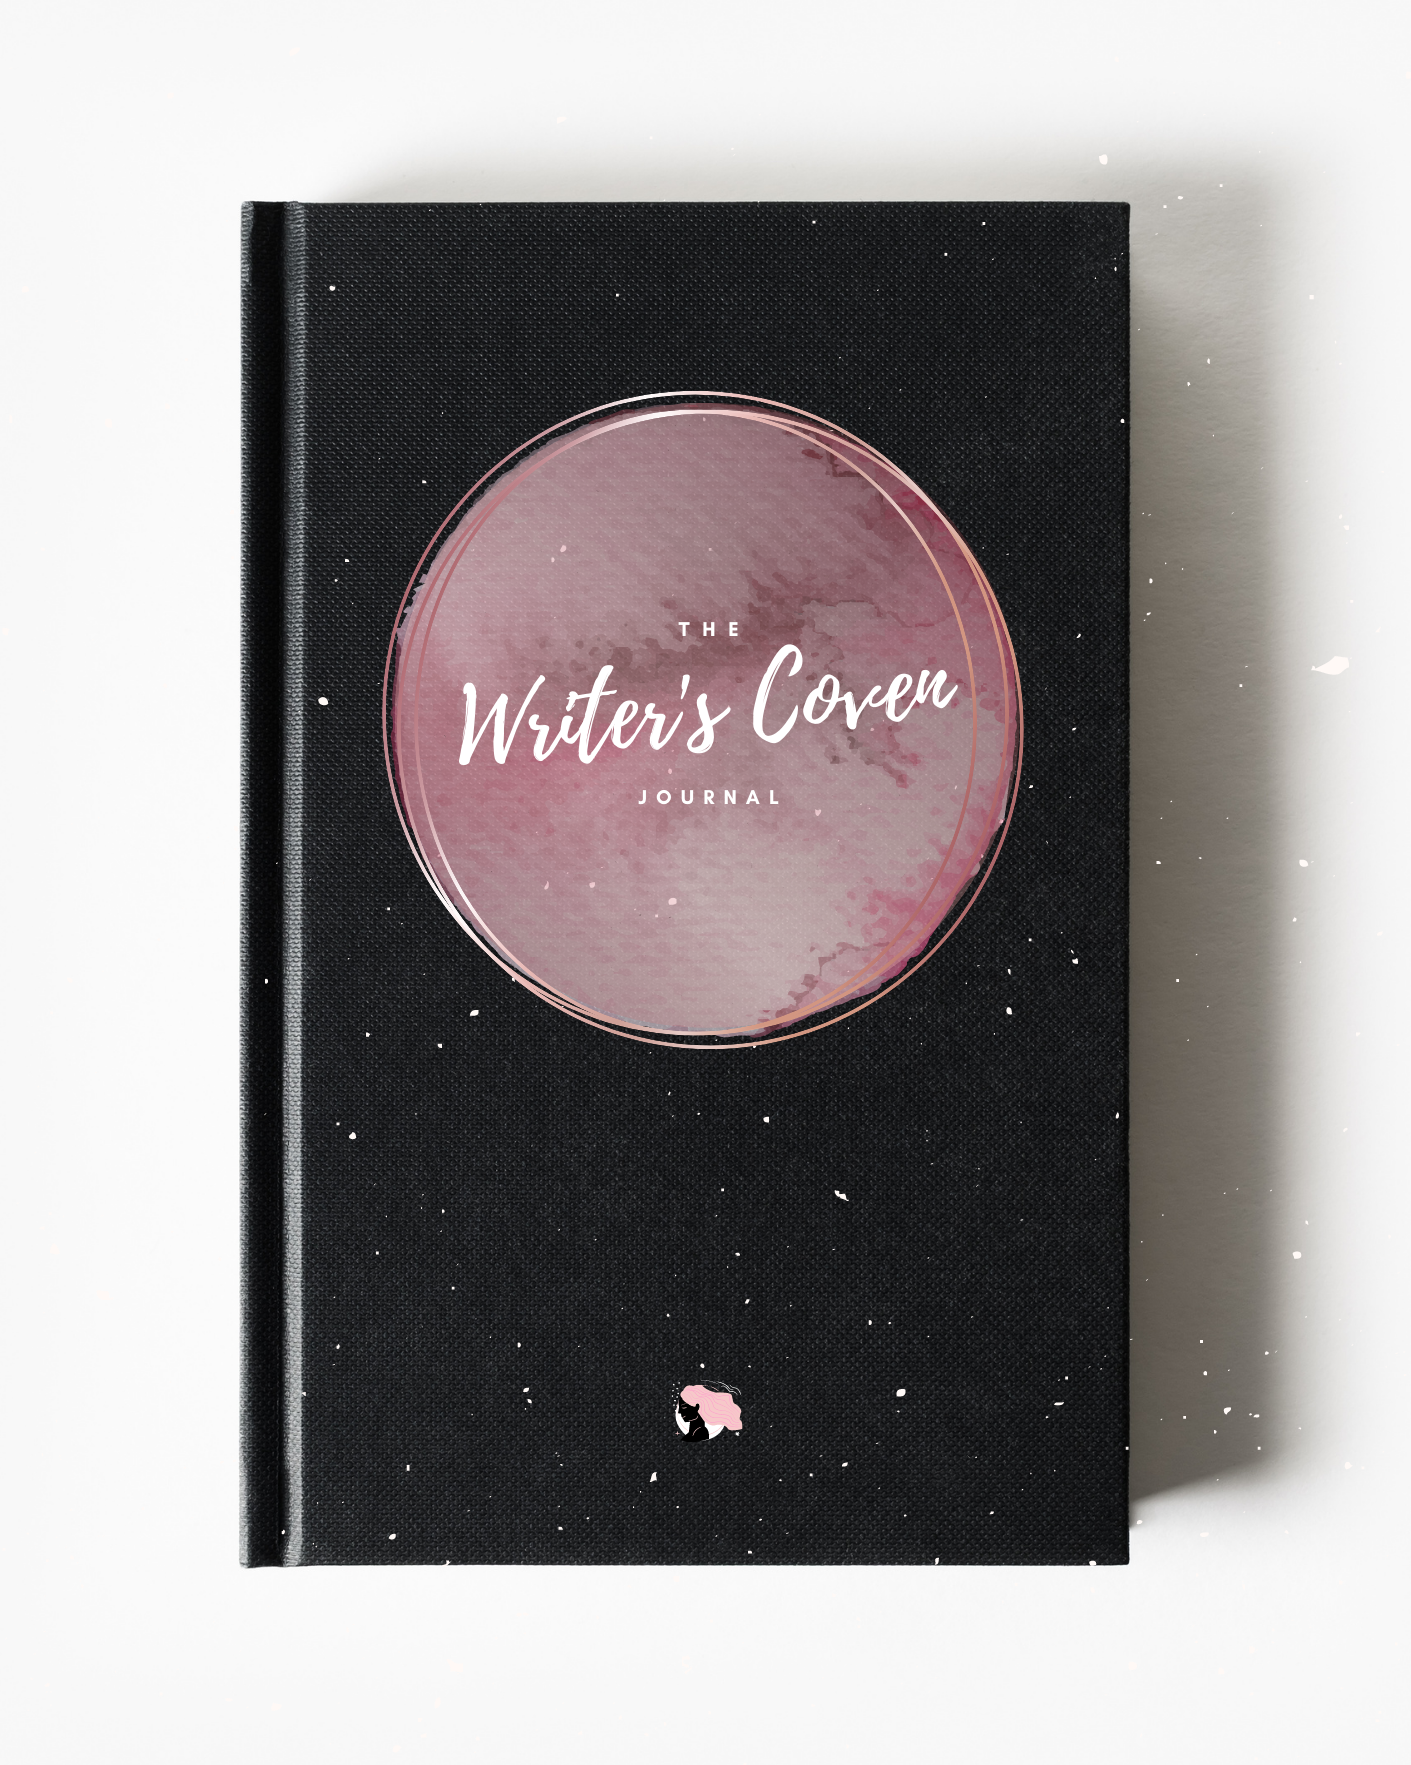 the writer's coven journal